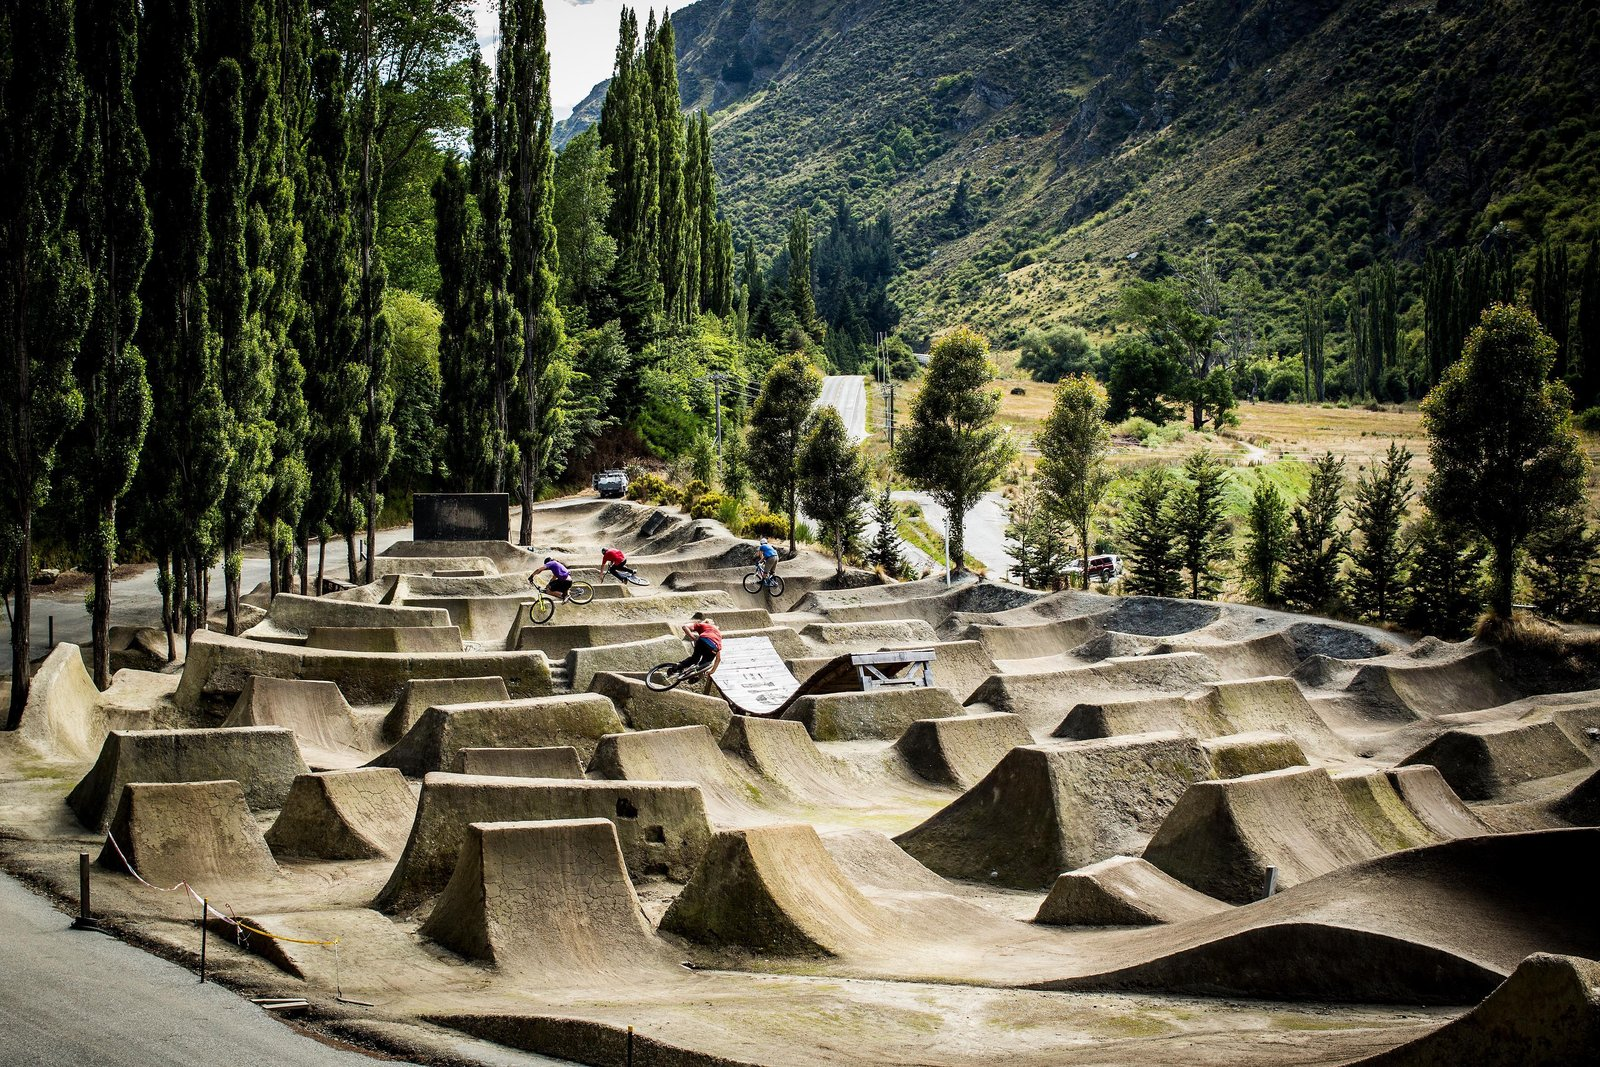 dirt jump trails gorge road bike park queenstown new zealand